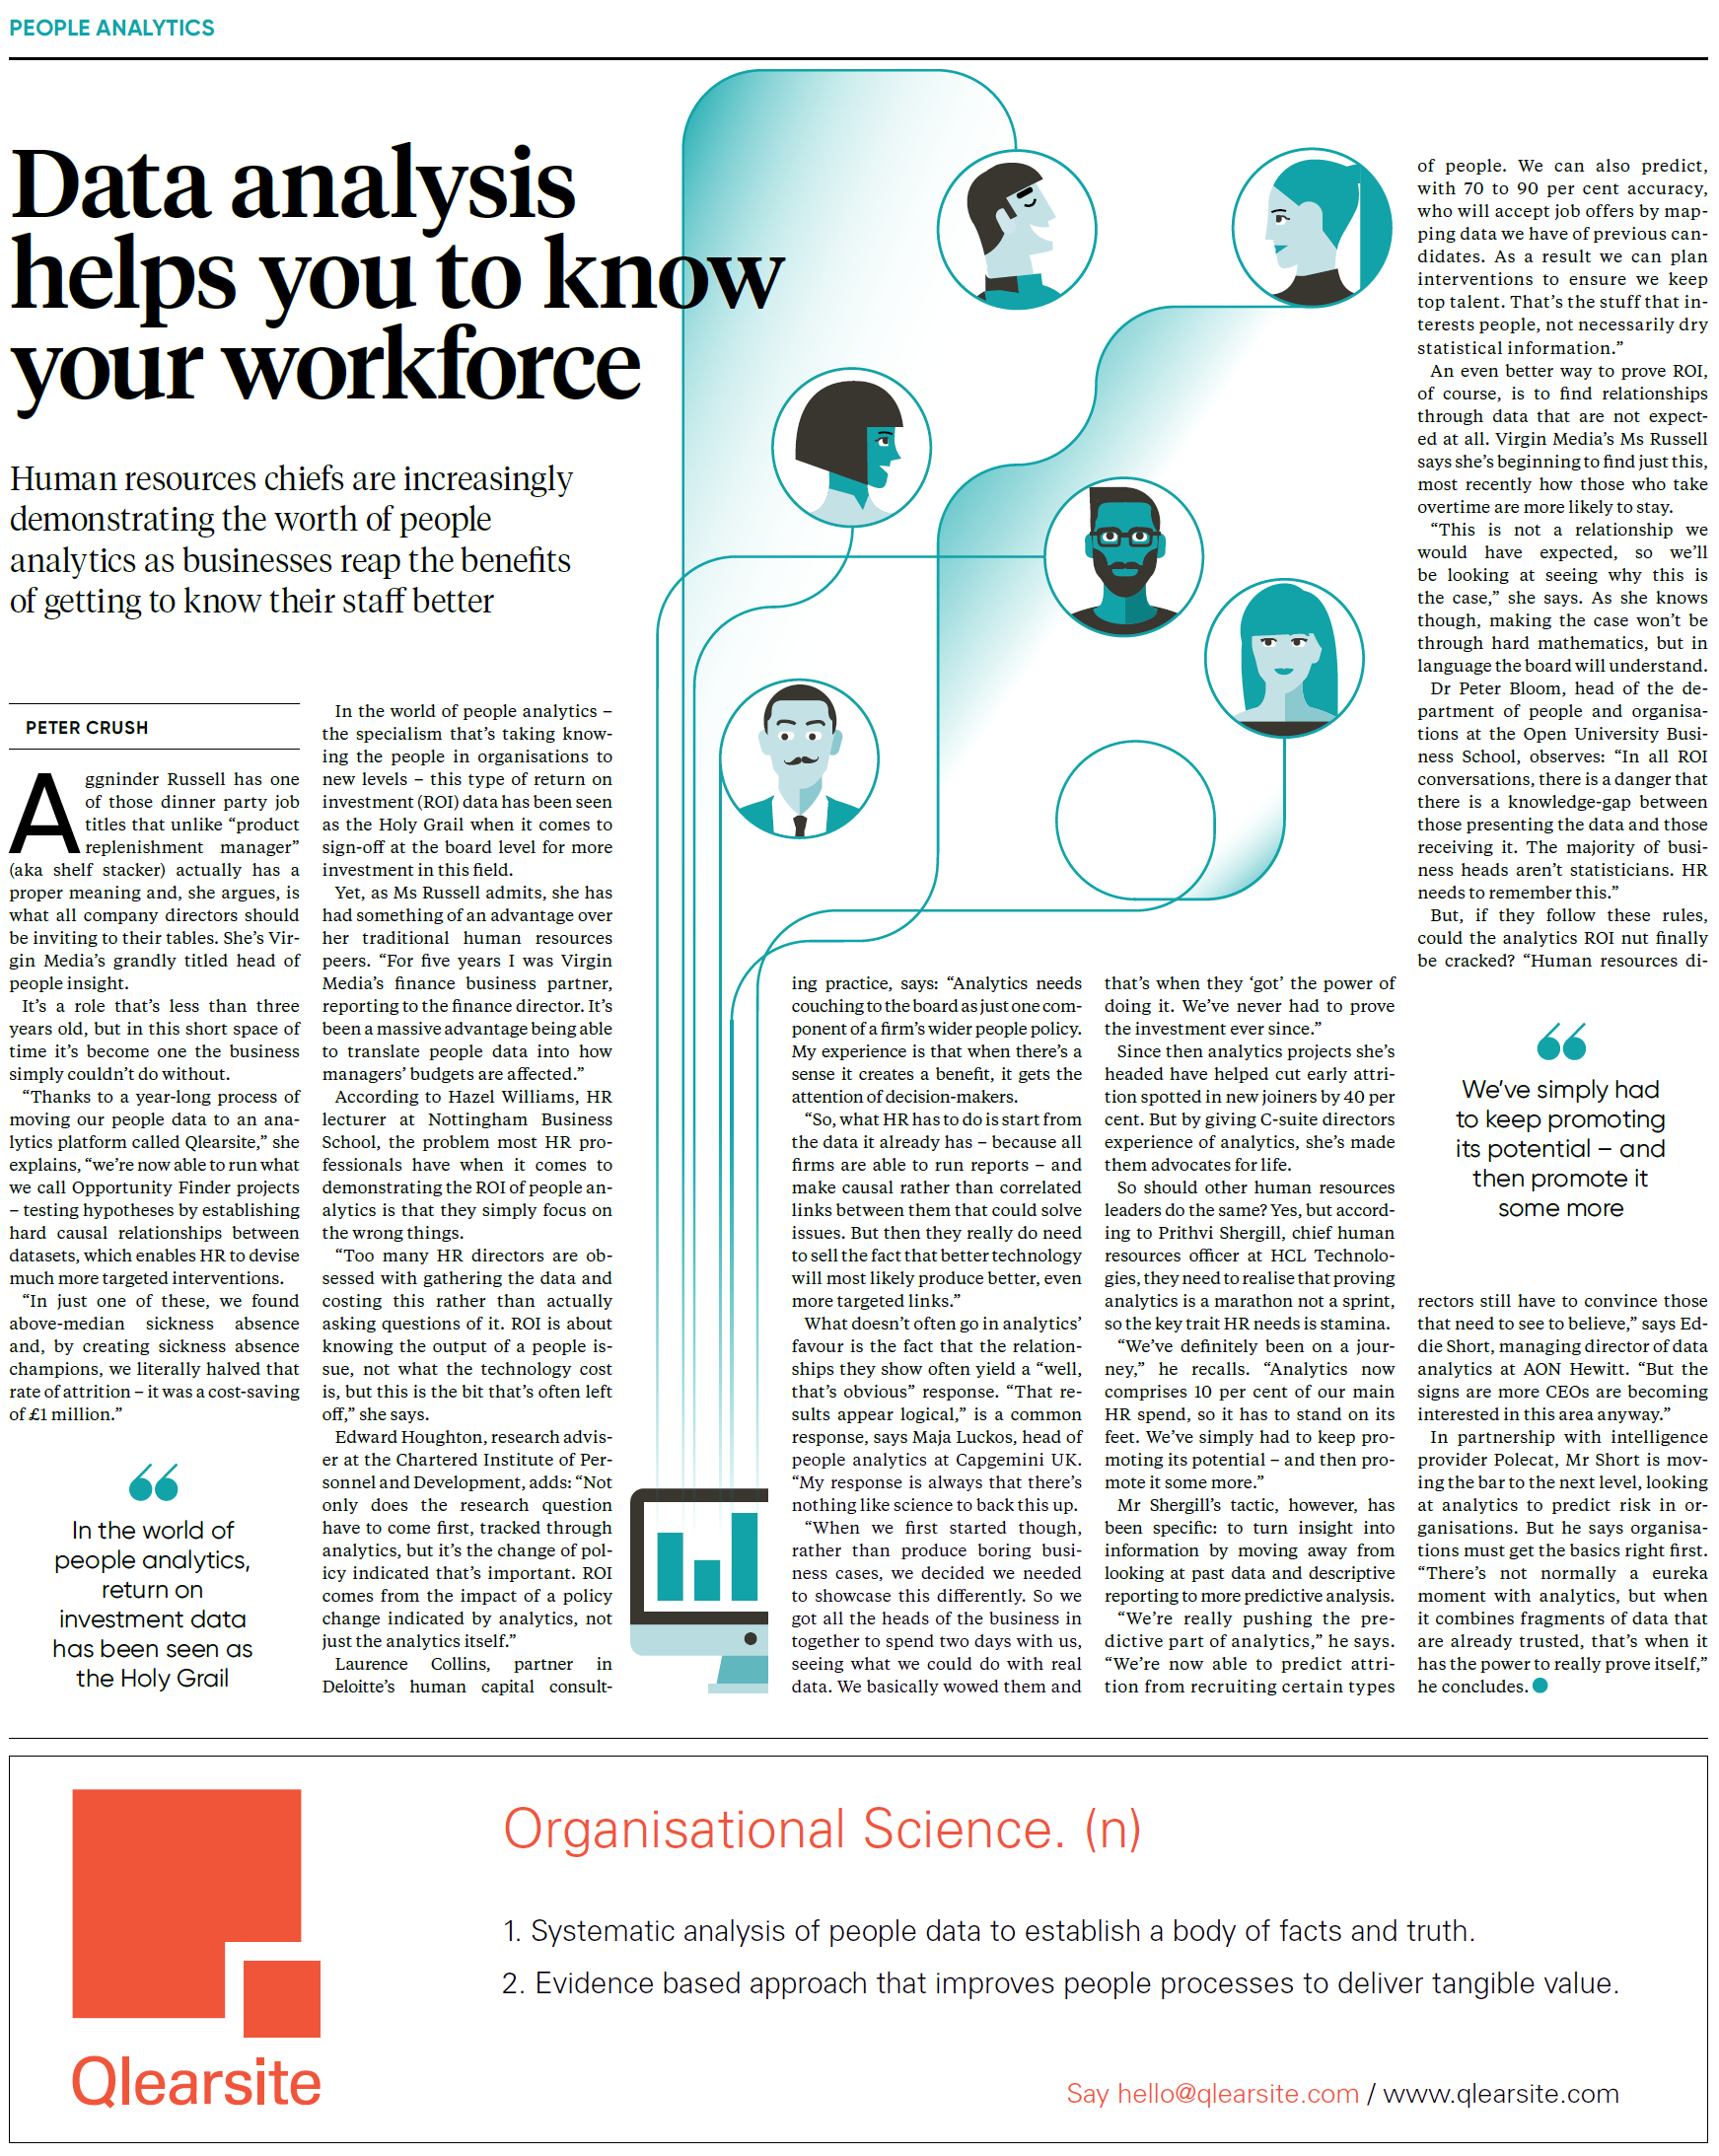 The Times: Data analysis helps you to know your workforce